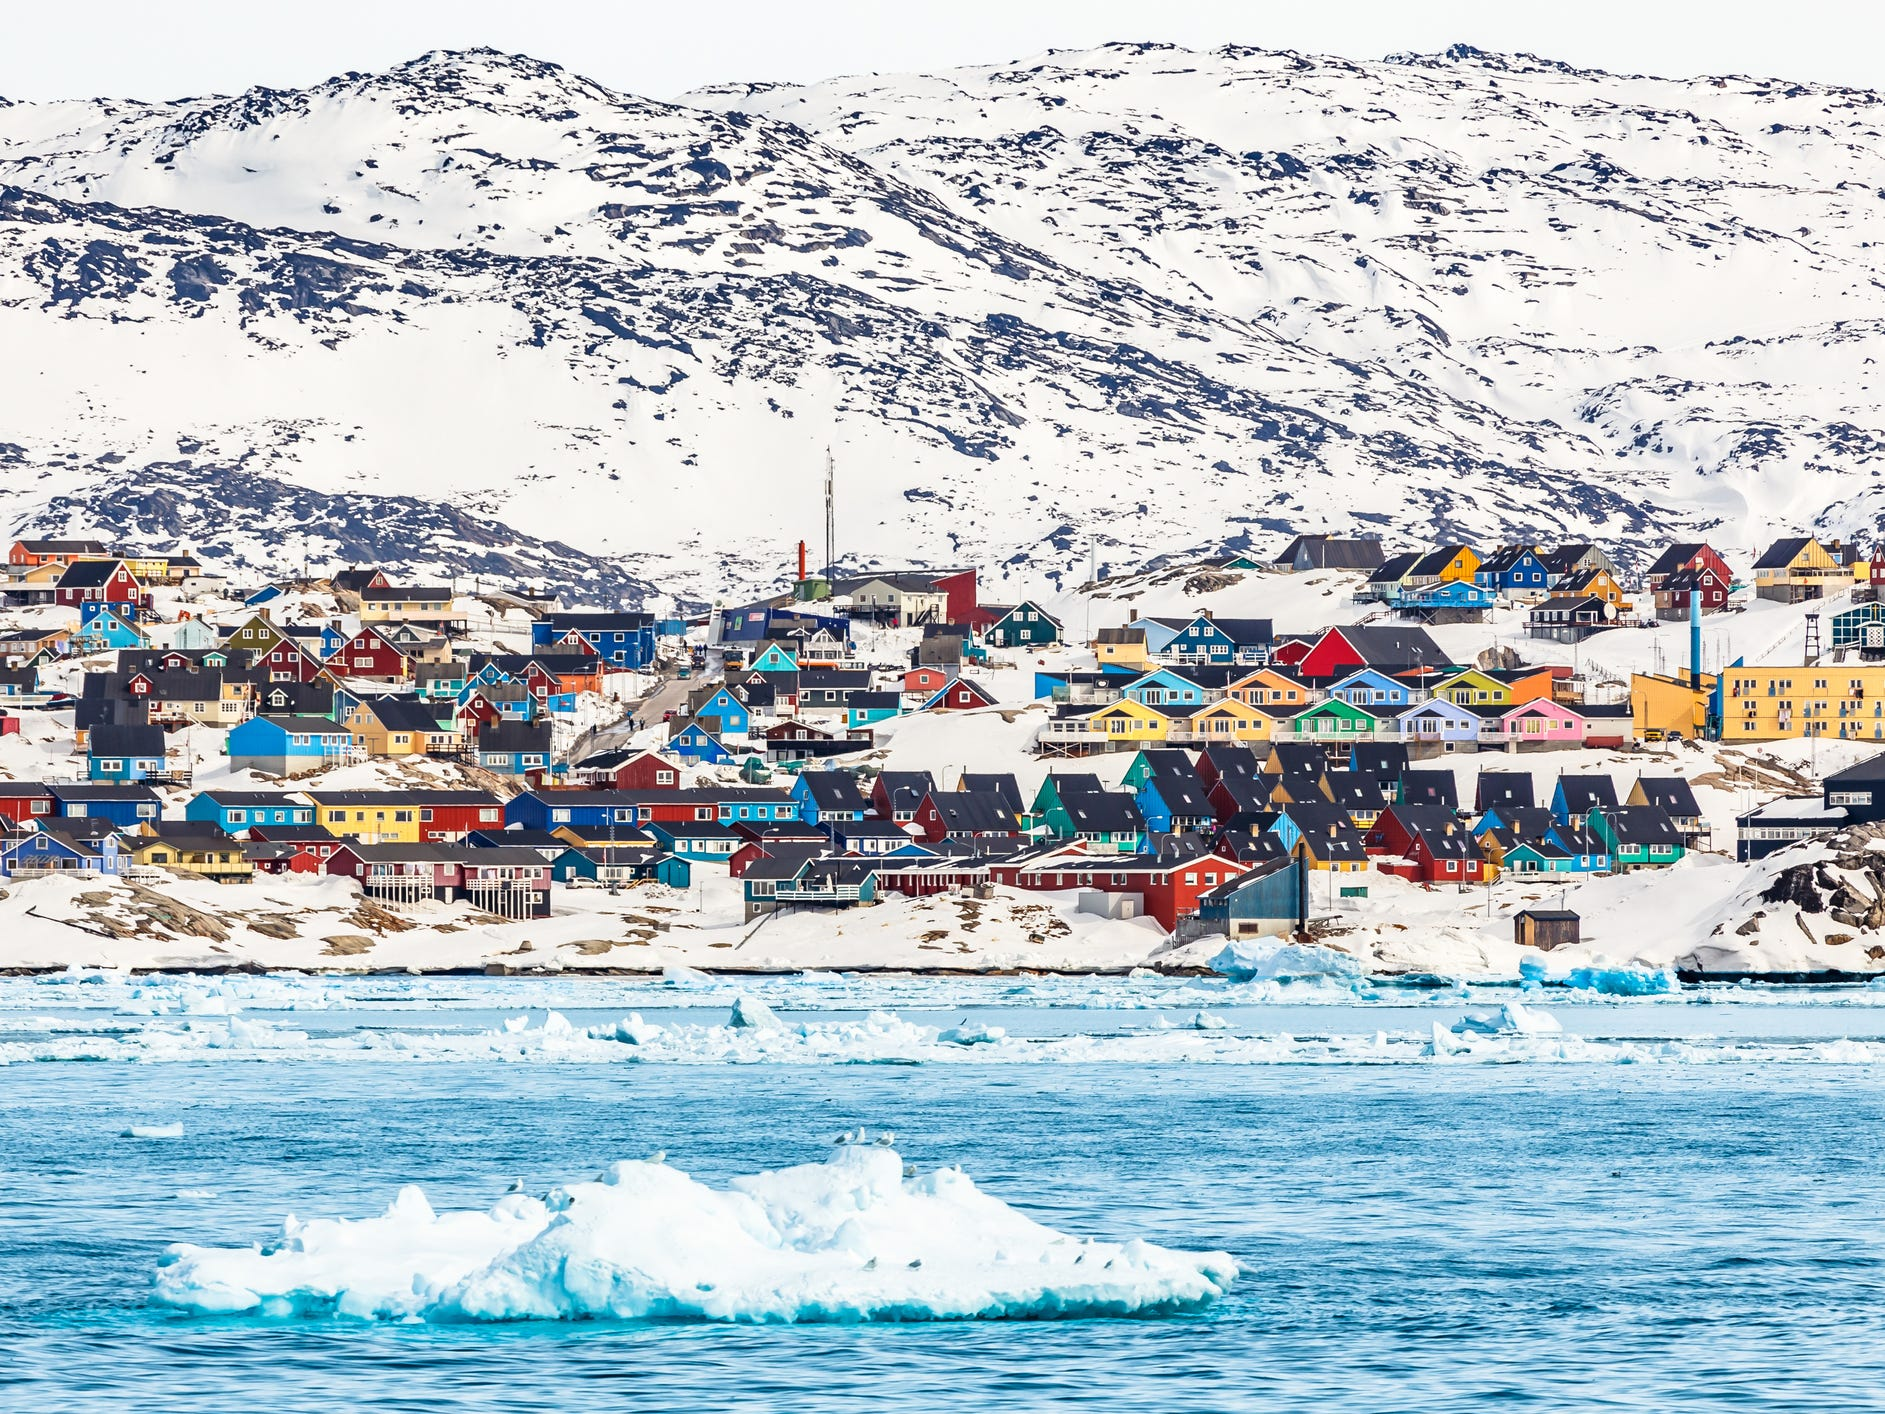 Ilulissat, Greenland: Set against the subdued color palette of the Arctic — white ice, gray rocks, brown tundra grasses — Ilulissat's vividly painted houses bring a spot of cheer to this remote outpost.